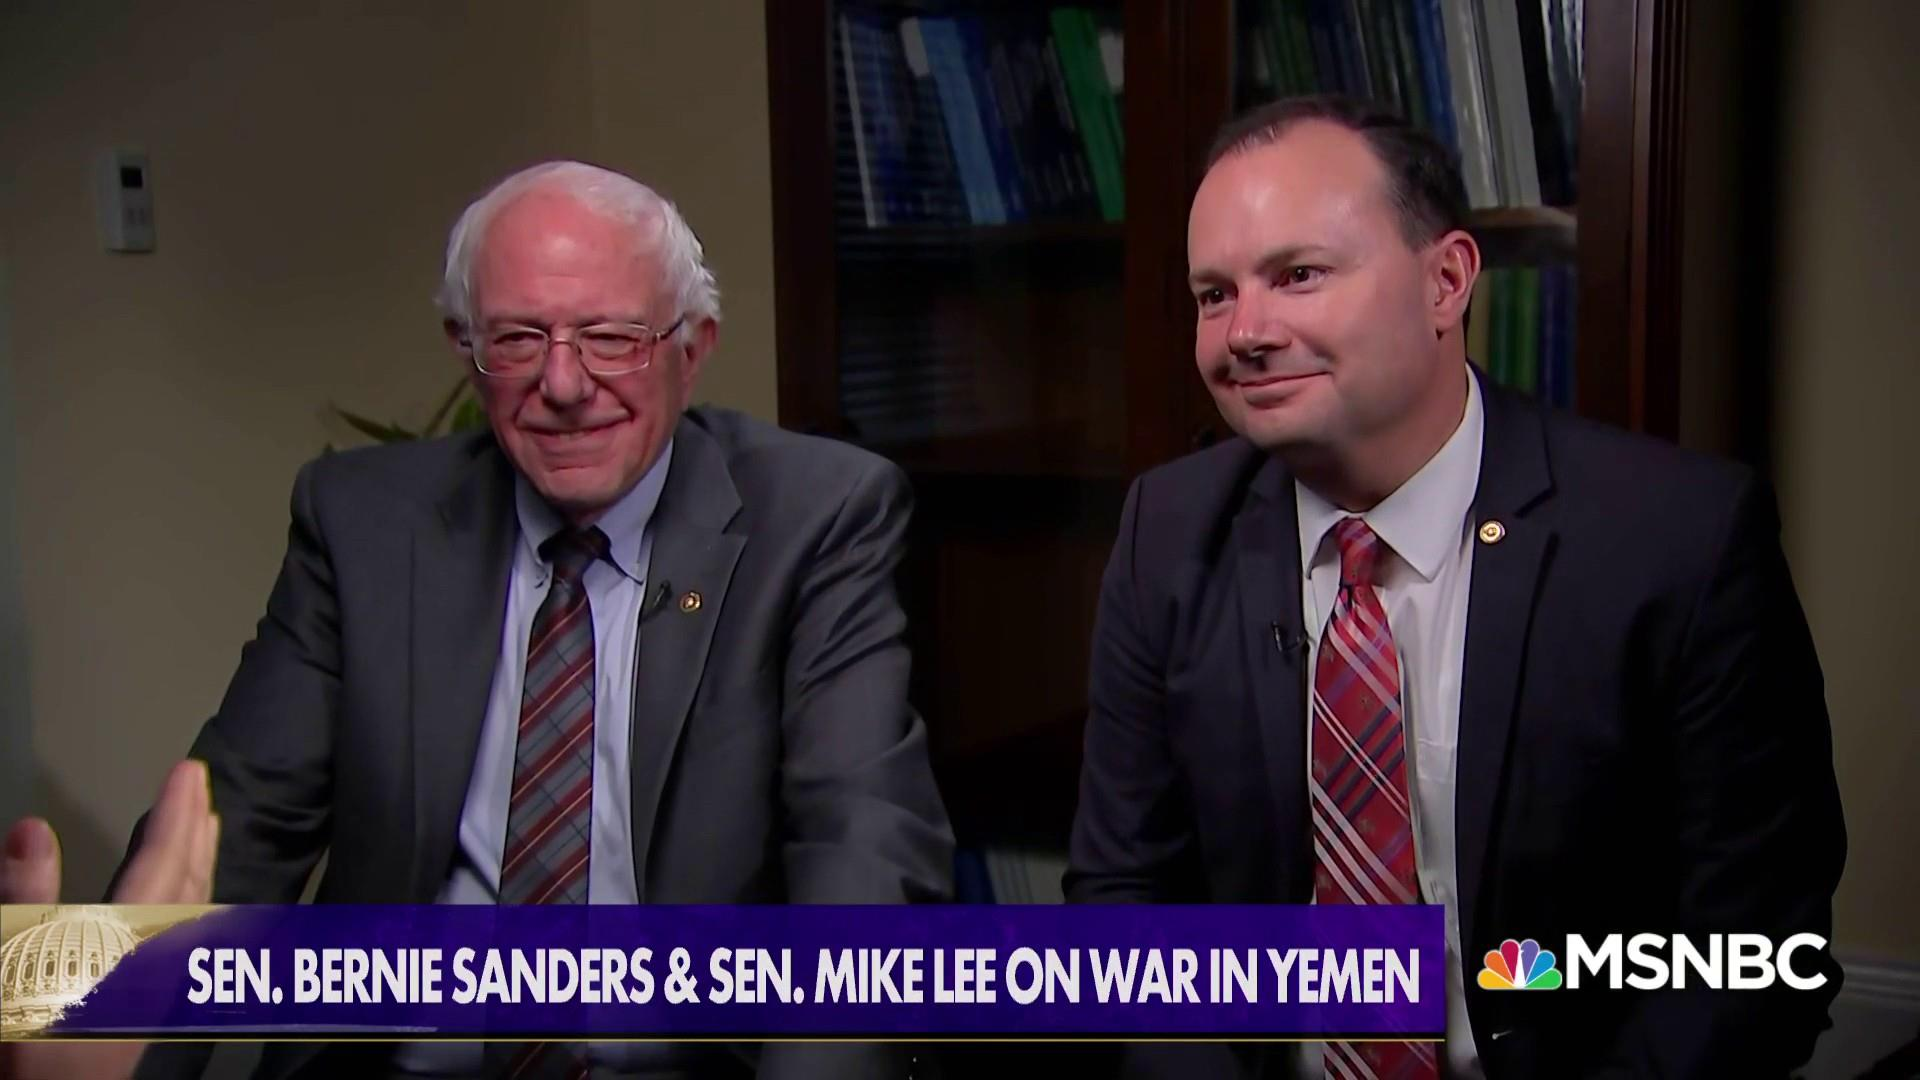 Sens. Sanders & Lee: U.S. involvement in Yemen 'unauthorized' and 'unconstitutional'